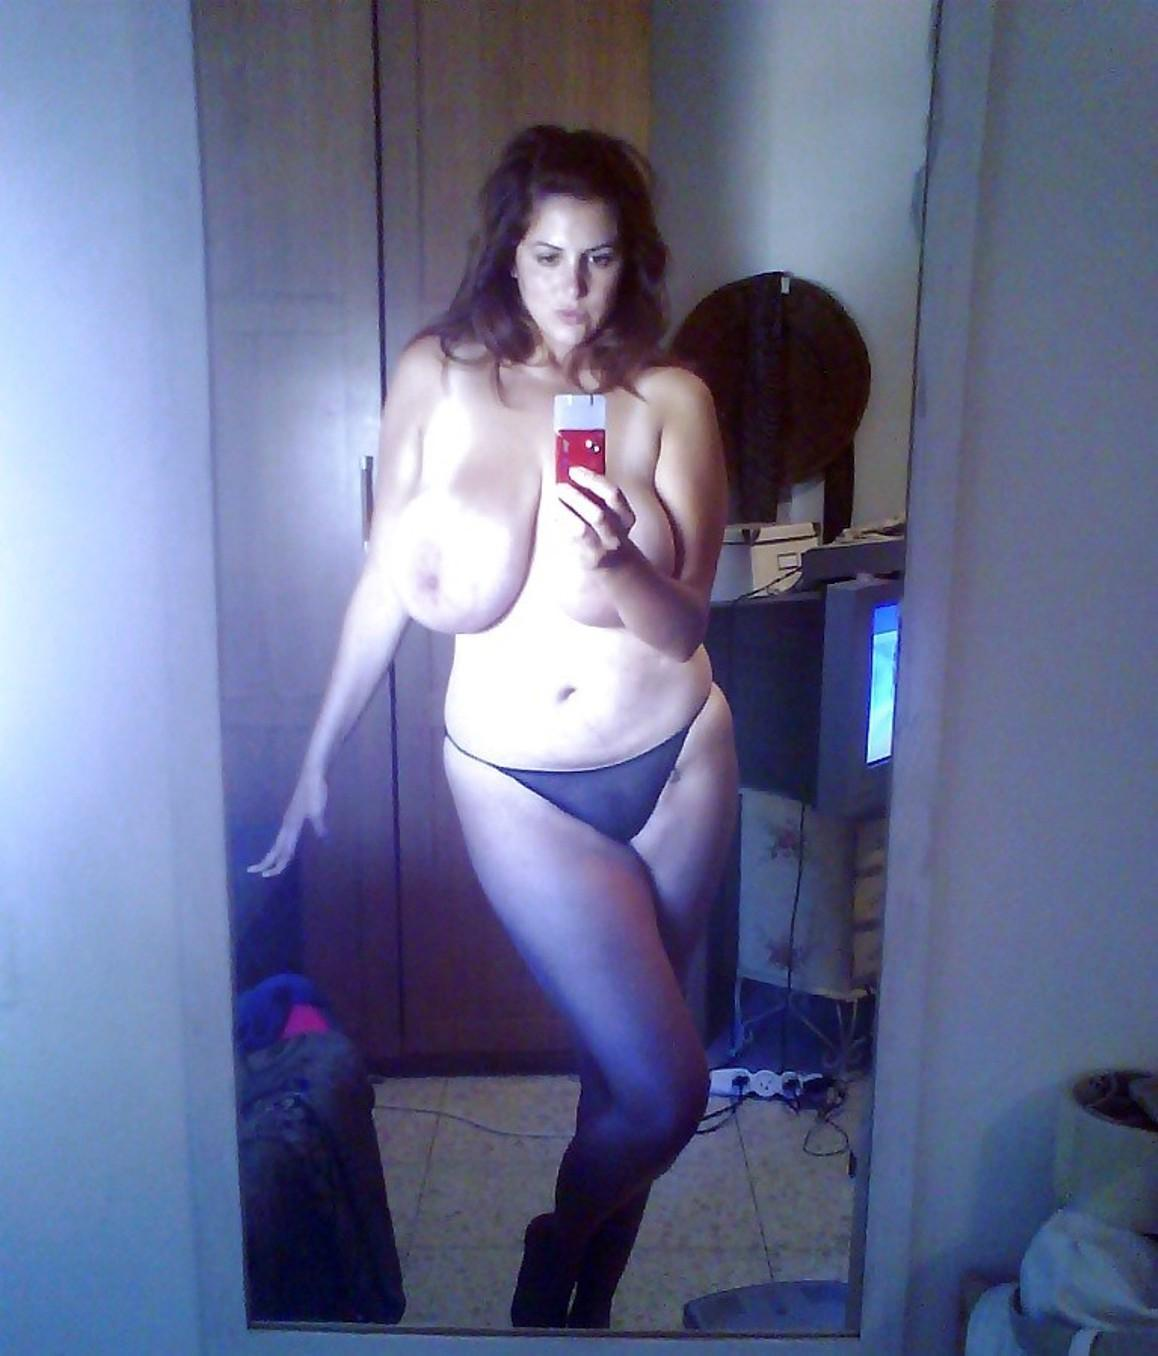 Mature lady with big natural can awaken men's senses. Brunette MILF with black hair uncovers her nice melons